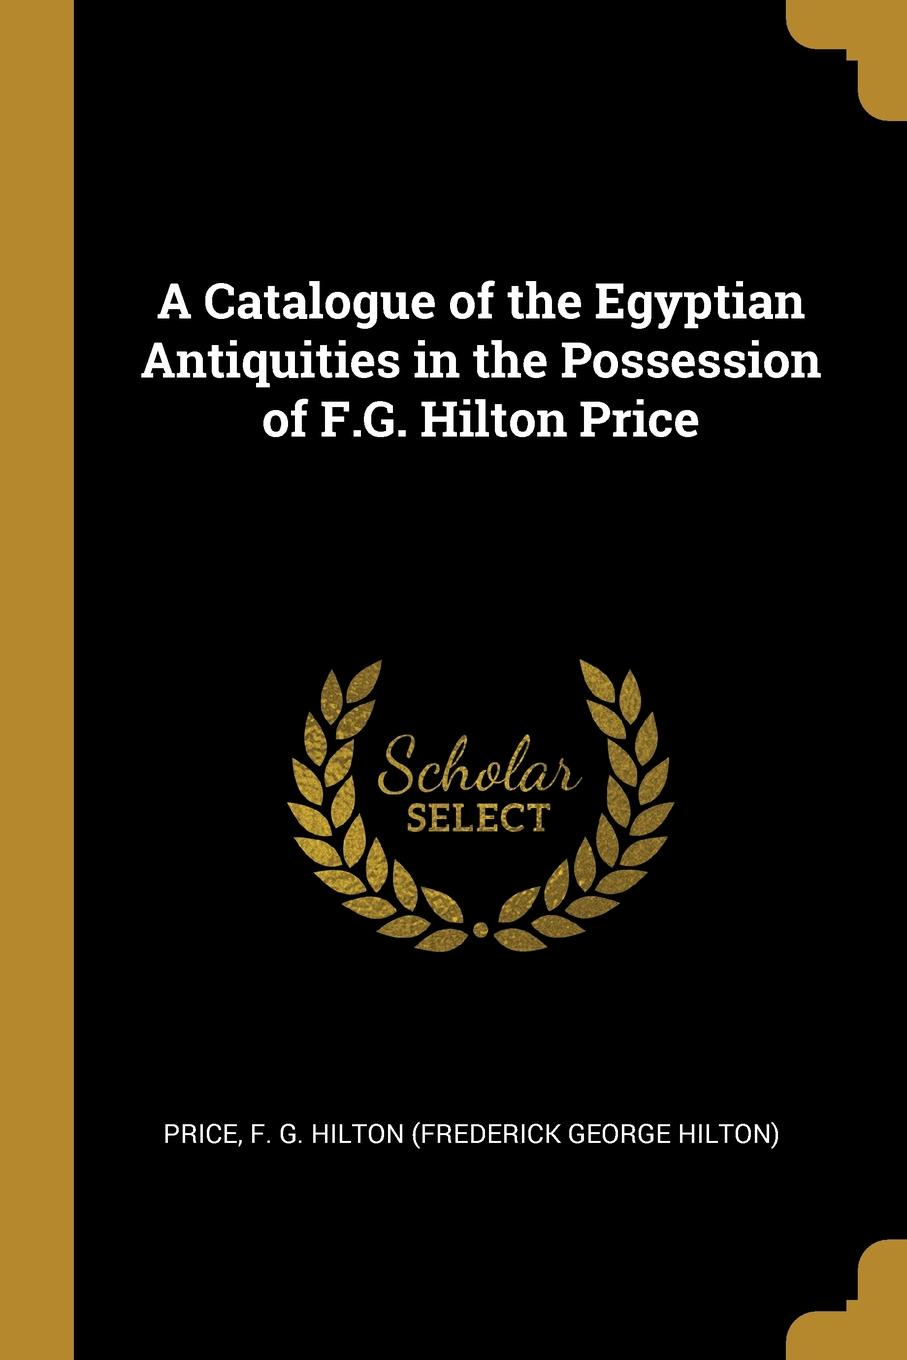 F. G. Hilton (Frederick George Hilton). A Catalogue of the Egyptian Antiquities in the Possession of F.G. Hilton Price